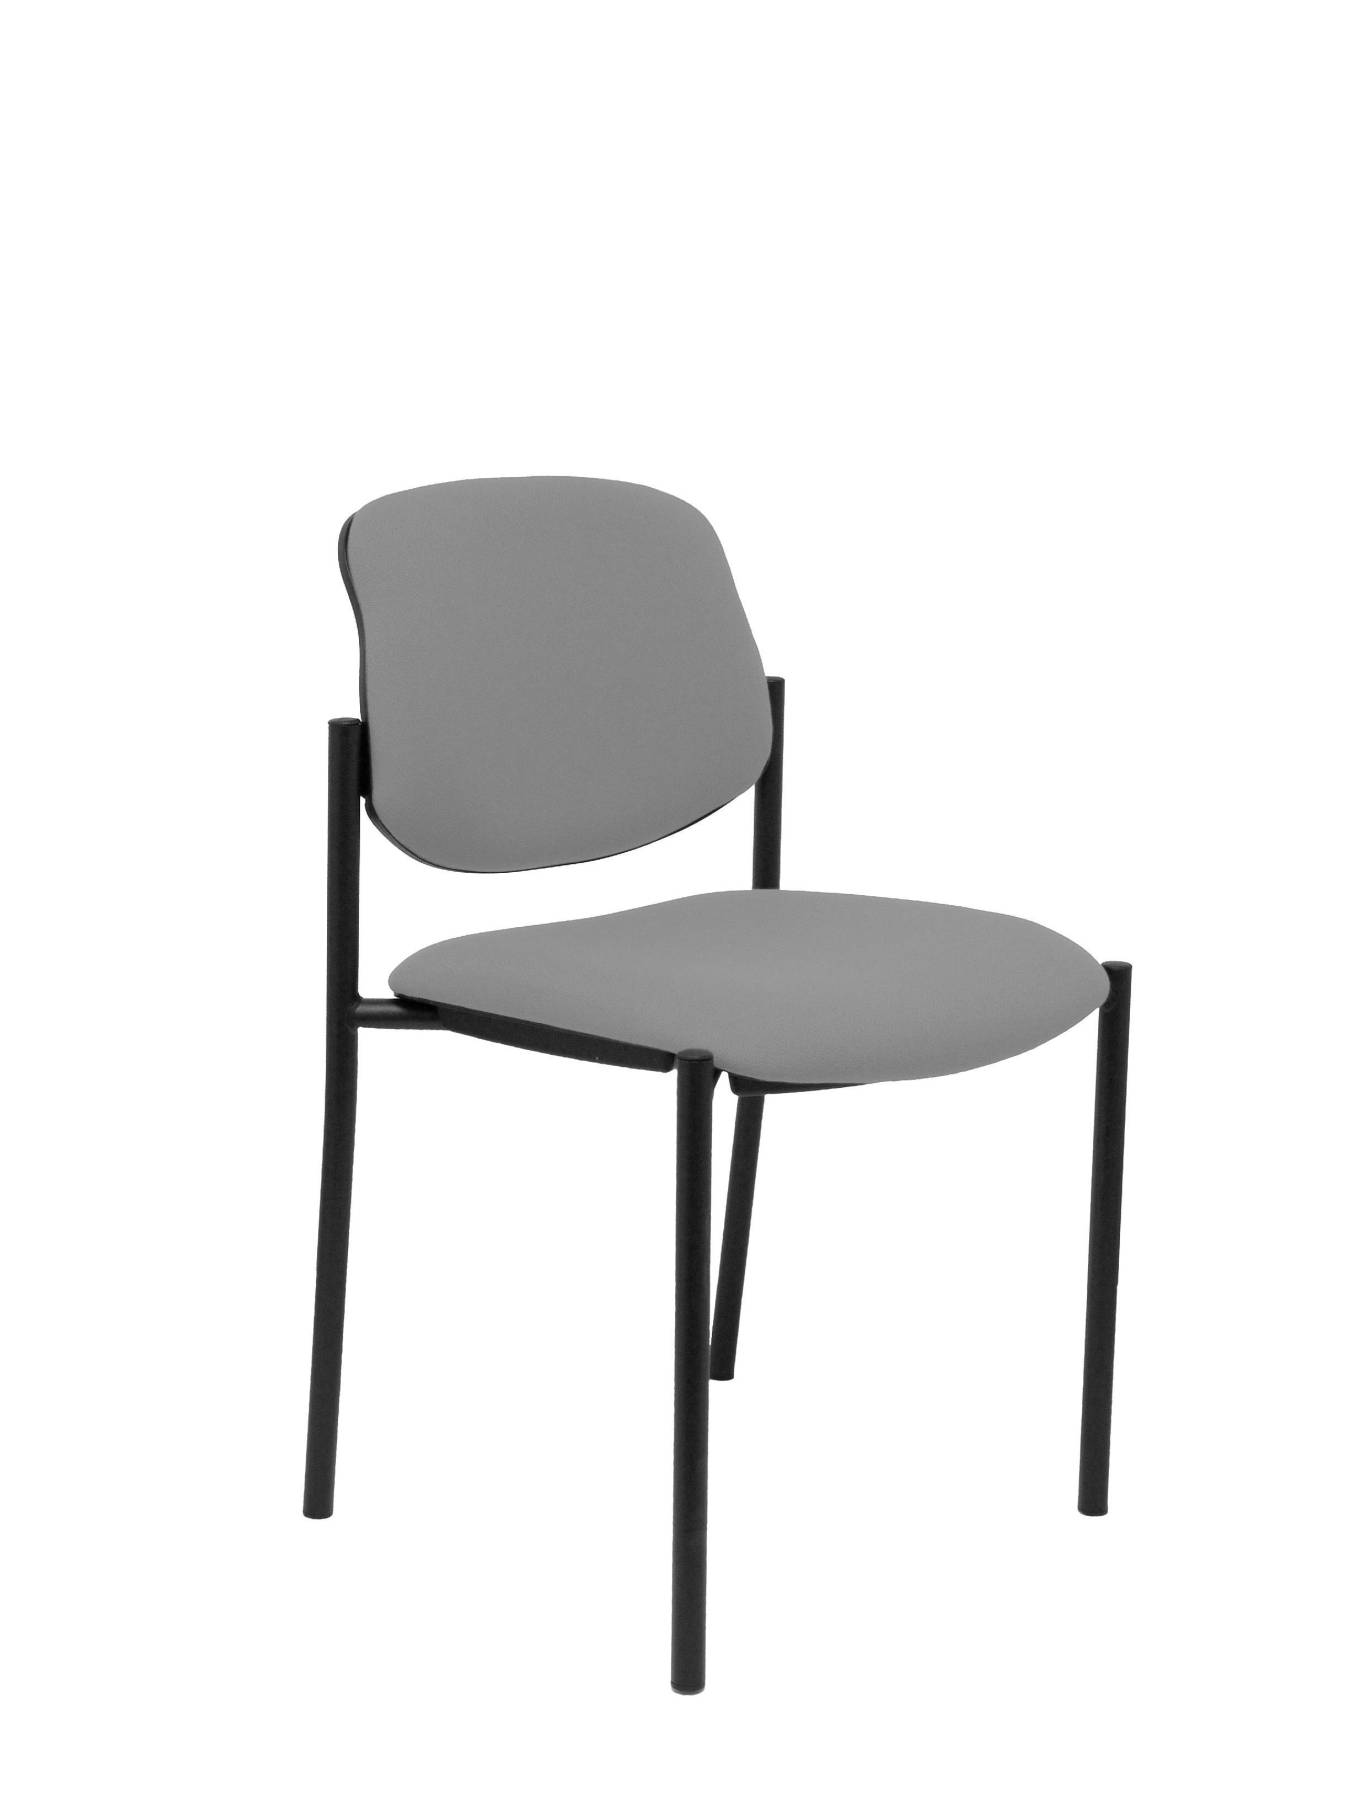 Visitor Chair 4's Topsy And Estructrua Negro-up Seat And Backstop Upholstered In BALI Tissue Gray Color TAPHOLE AND CRESP